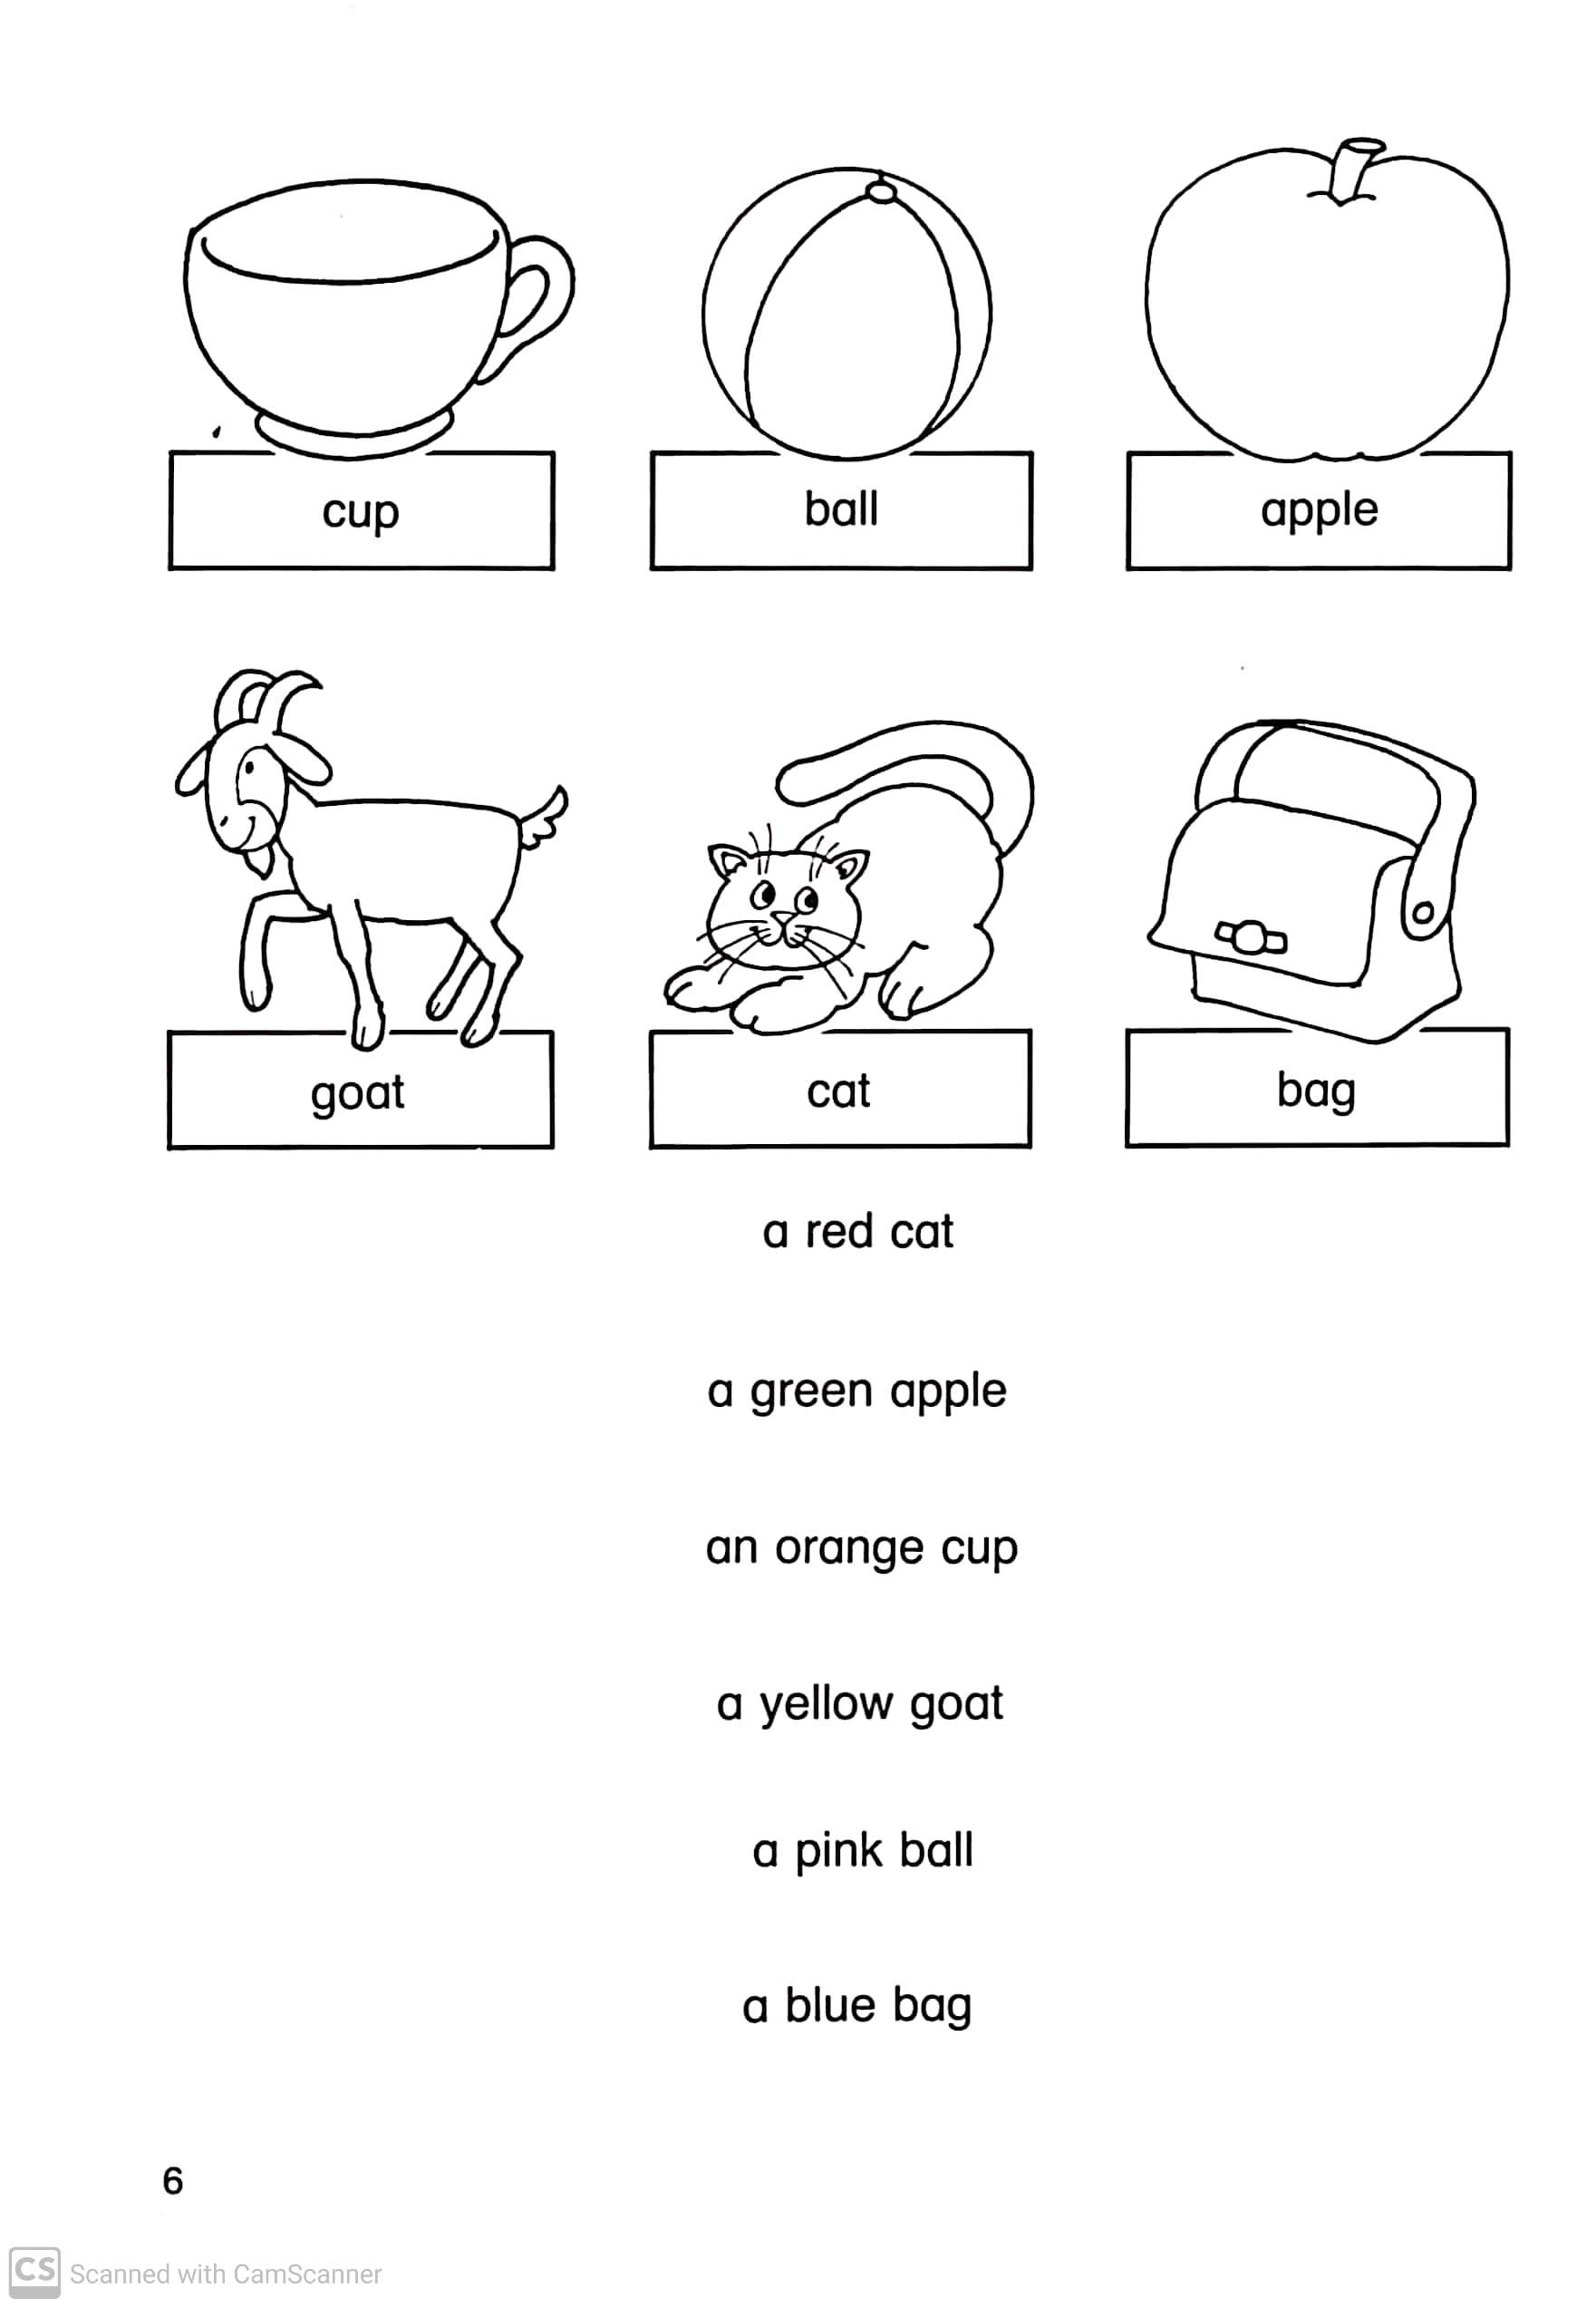 English worksheets for Grade 2